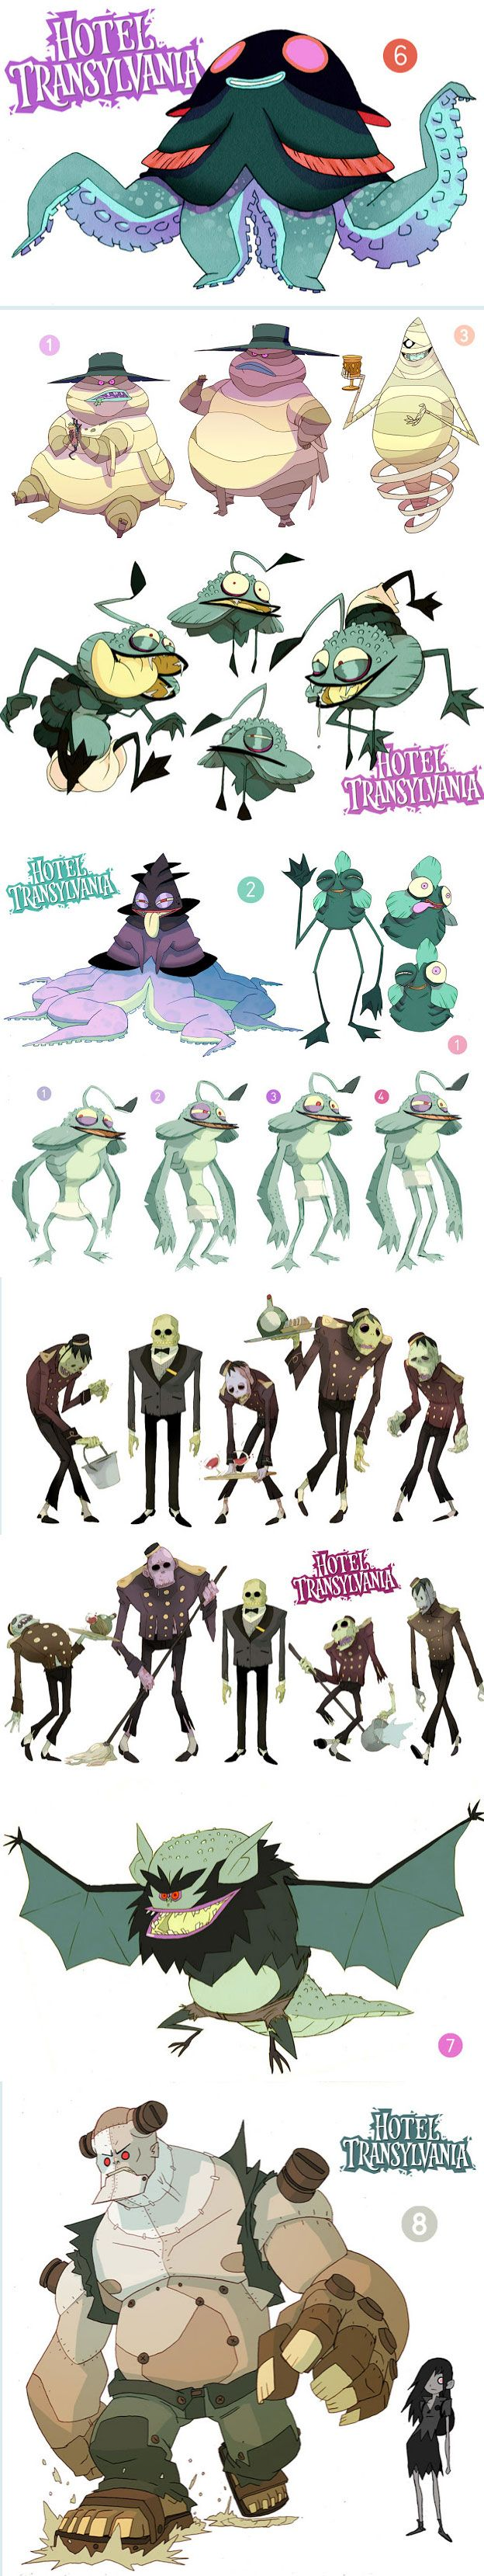 Character Design For Games Book : Best images about concept art quot hotel transylvania on